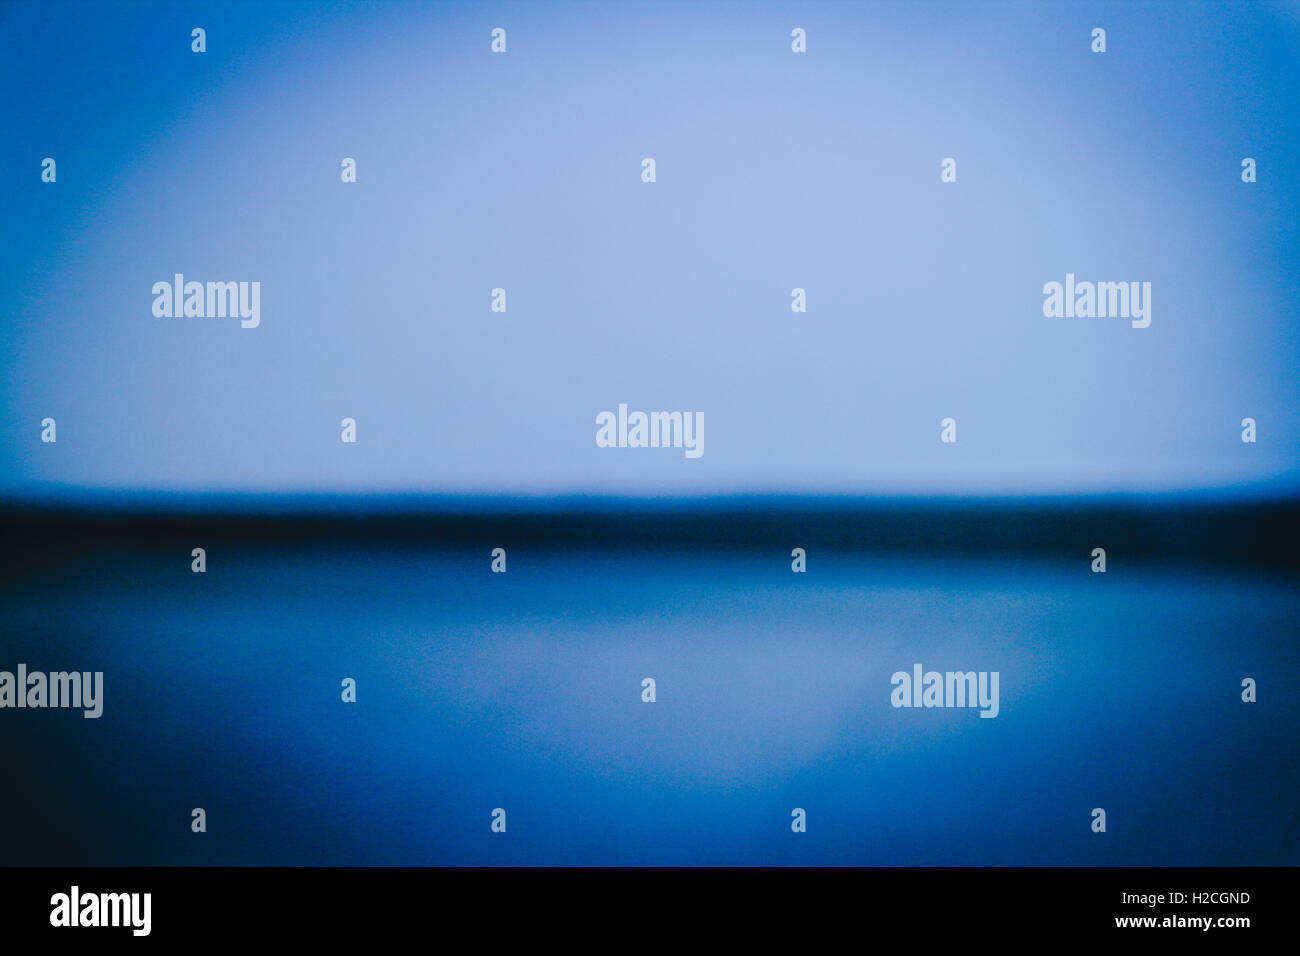 Blue floor and wall background Stock Photo: 121978457 - Alamy